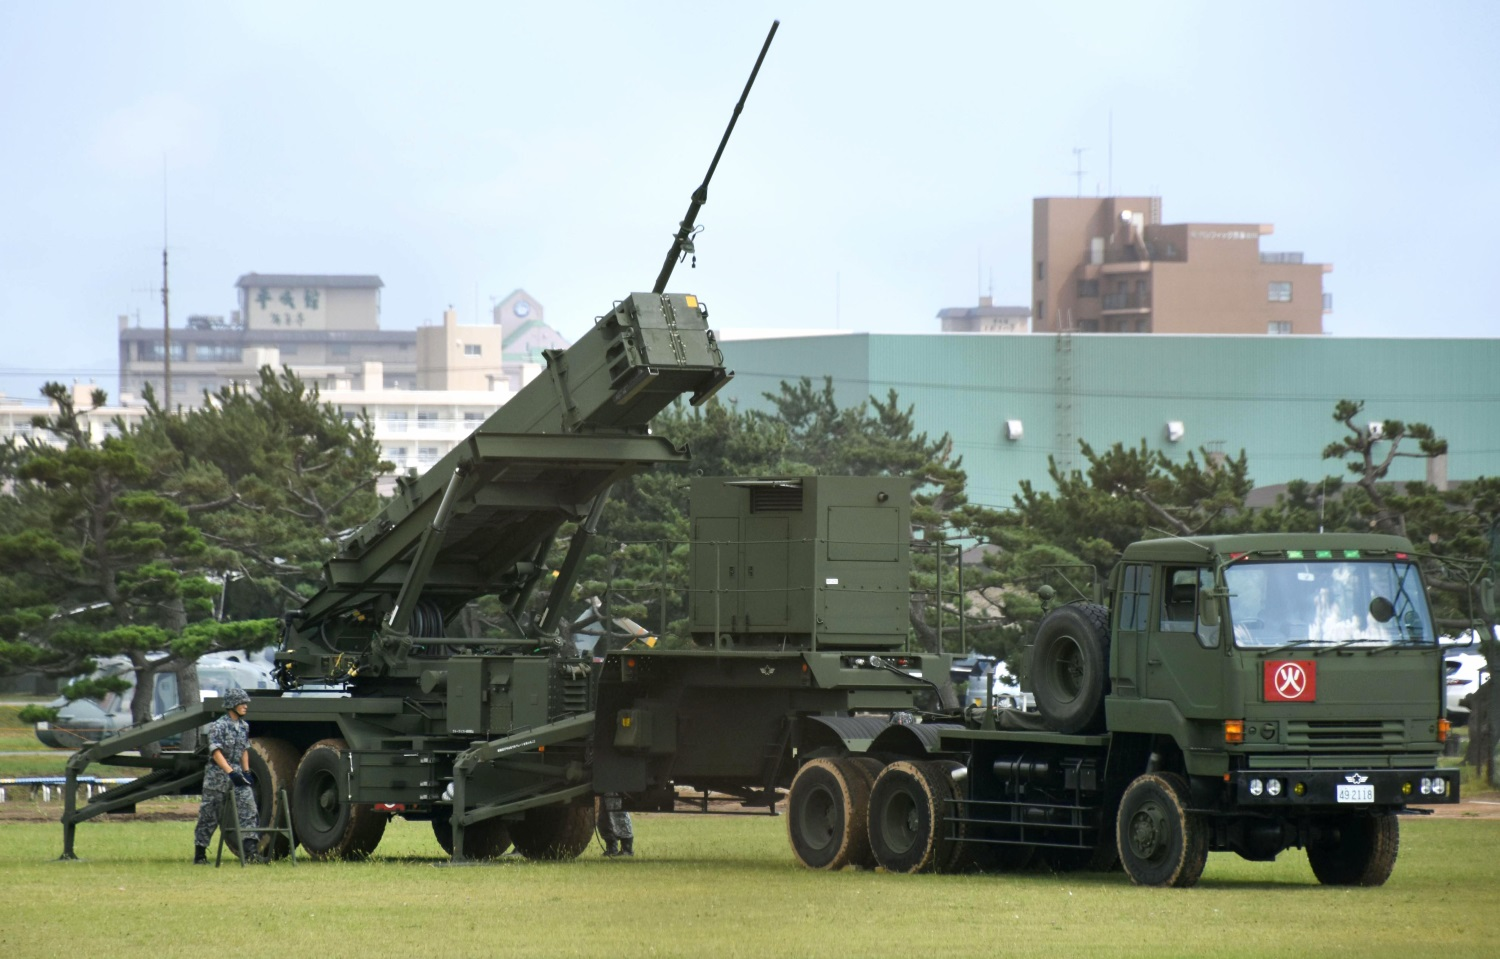 Patriot Advanced Capability-3 interceptor missile system (PAC3) is deployed at the Hakodate base of Japan's Self-Defense Forces on Sept. 19, 2017, in Hakodate, northern Japan. (Kyodo News via AP)